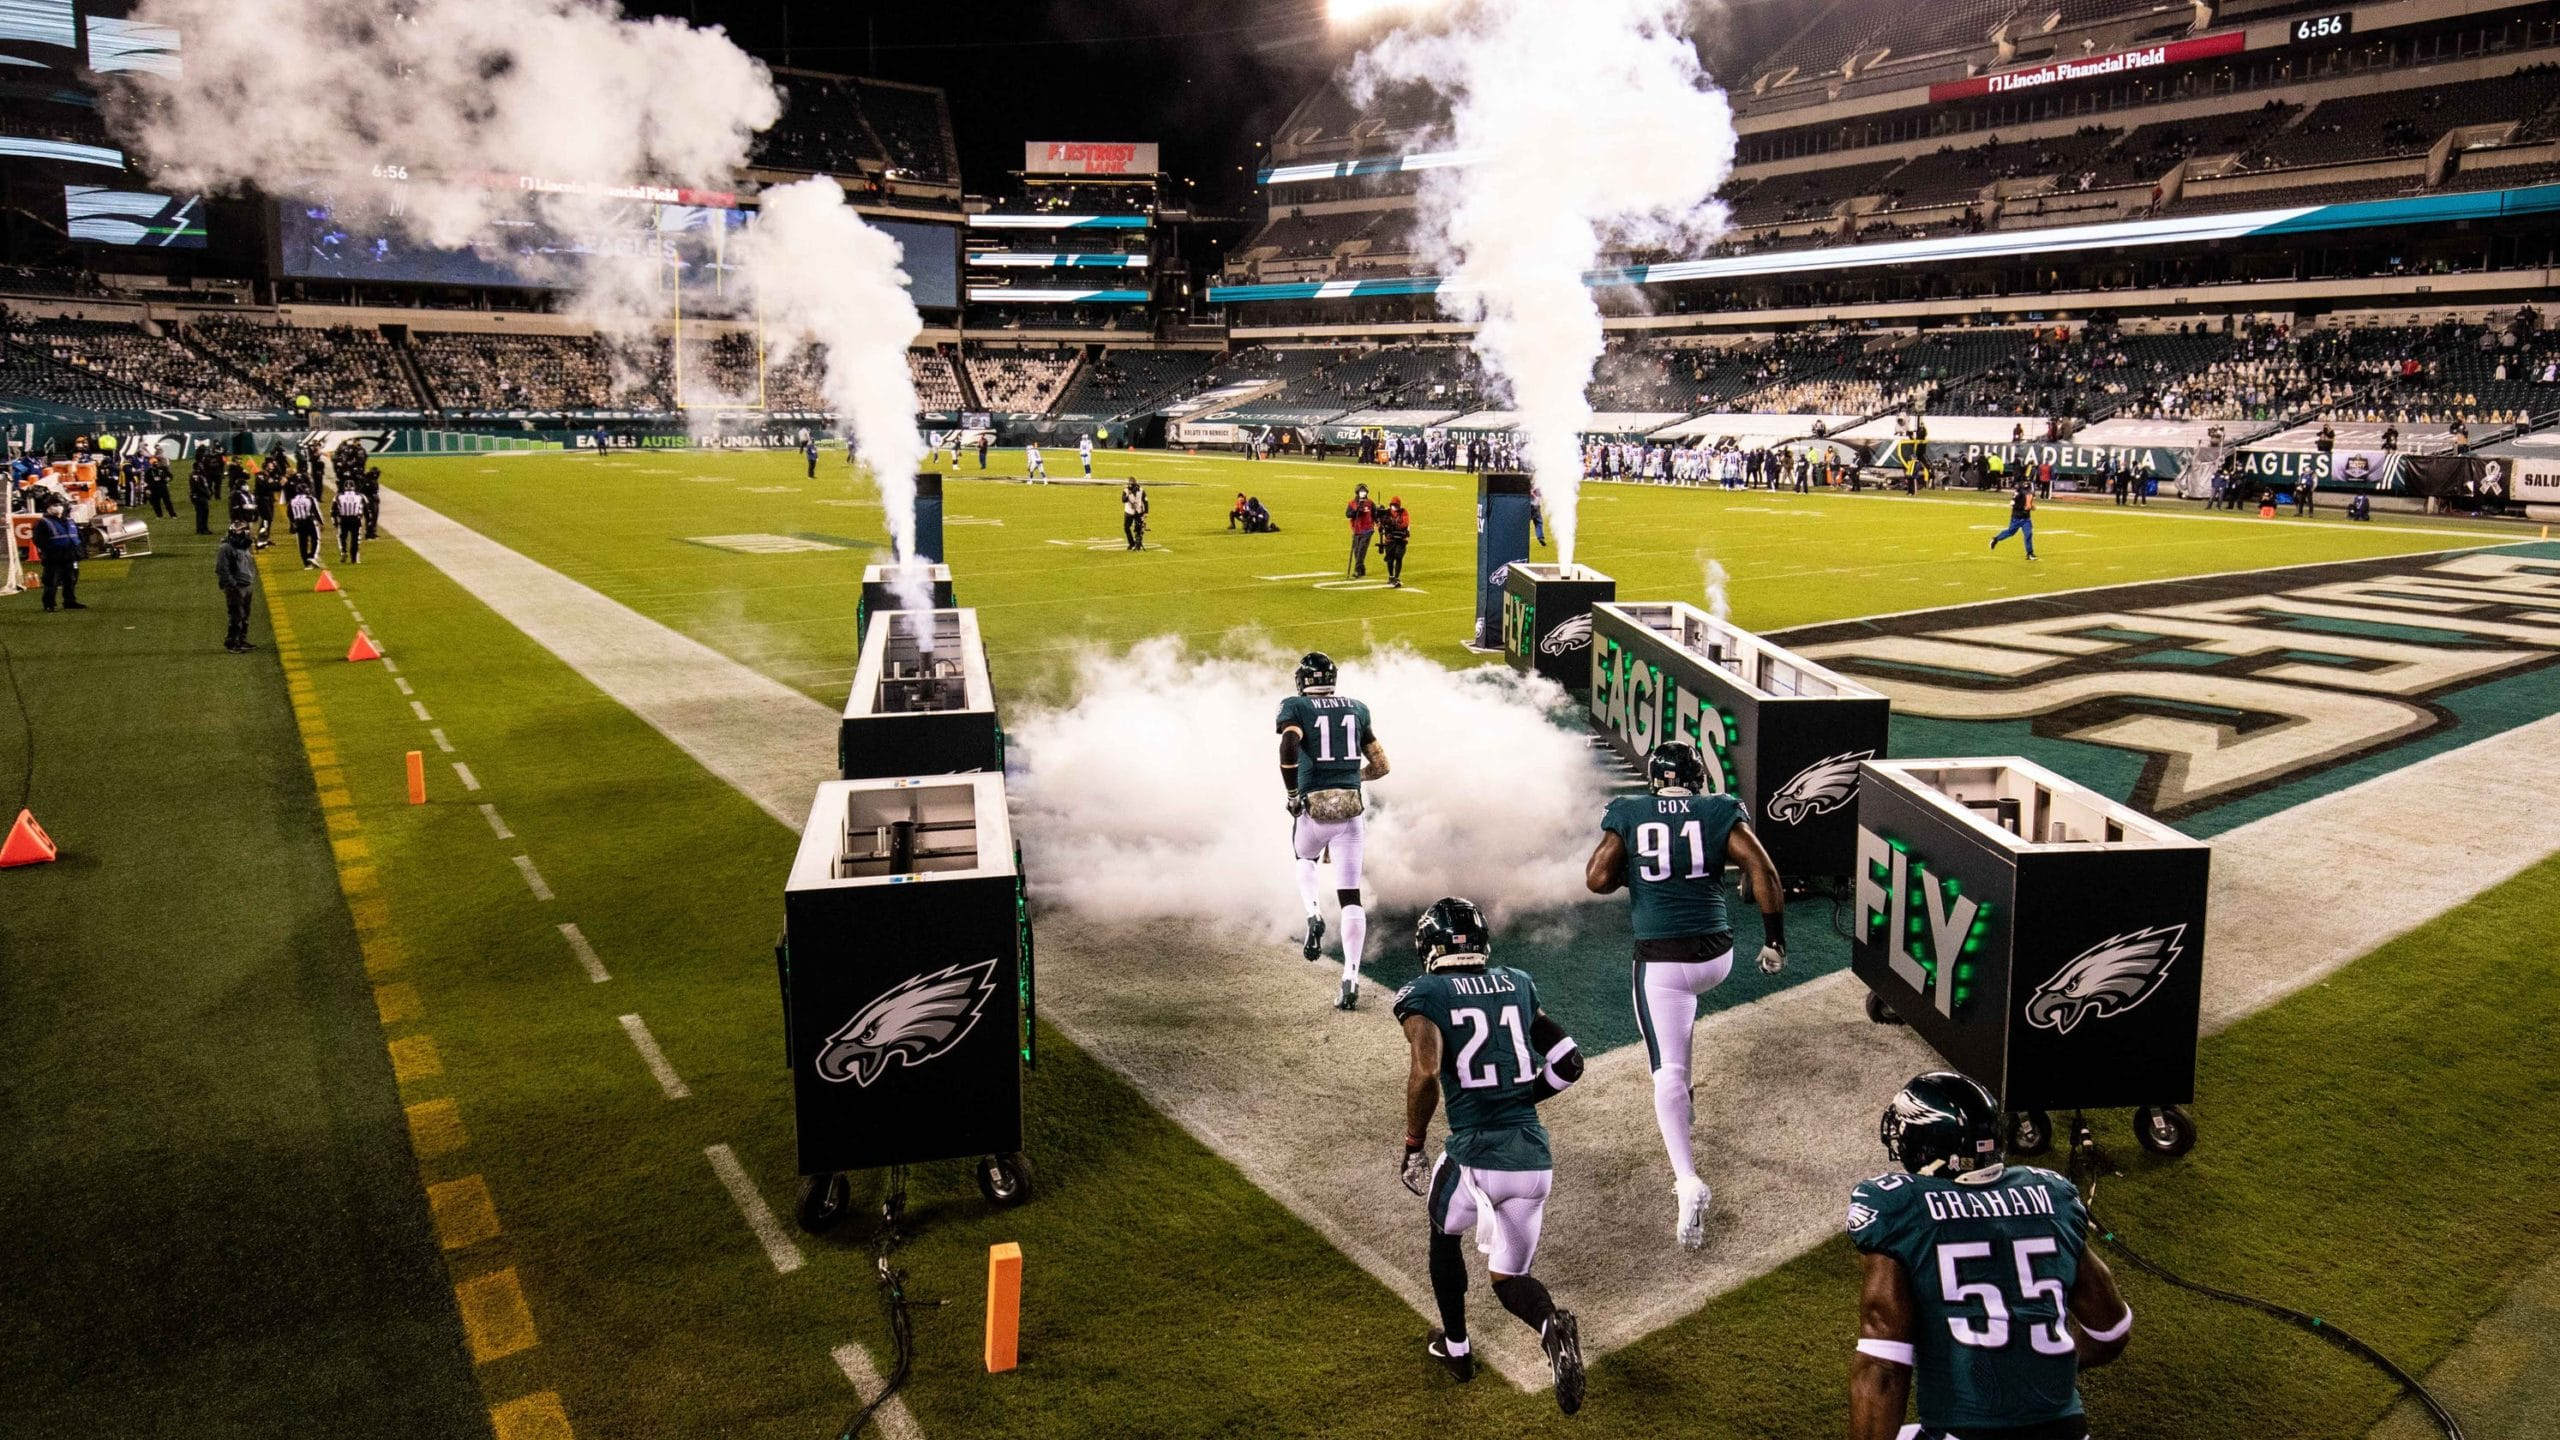 with-unique-local-covid-19-restrictions-philadelphia-eagles-disclose-no-extra-fans-at-home-video-games.jpg